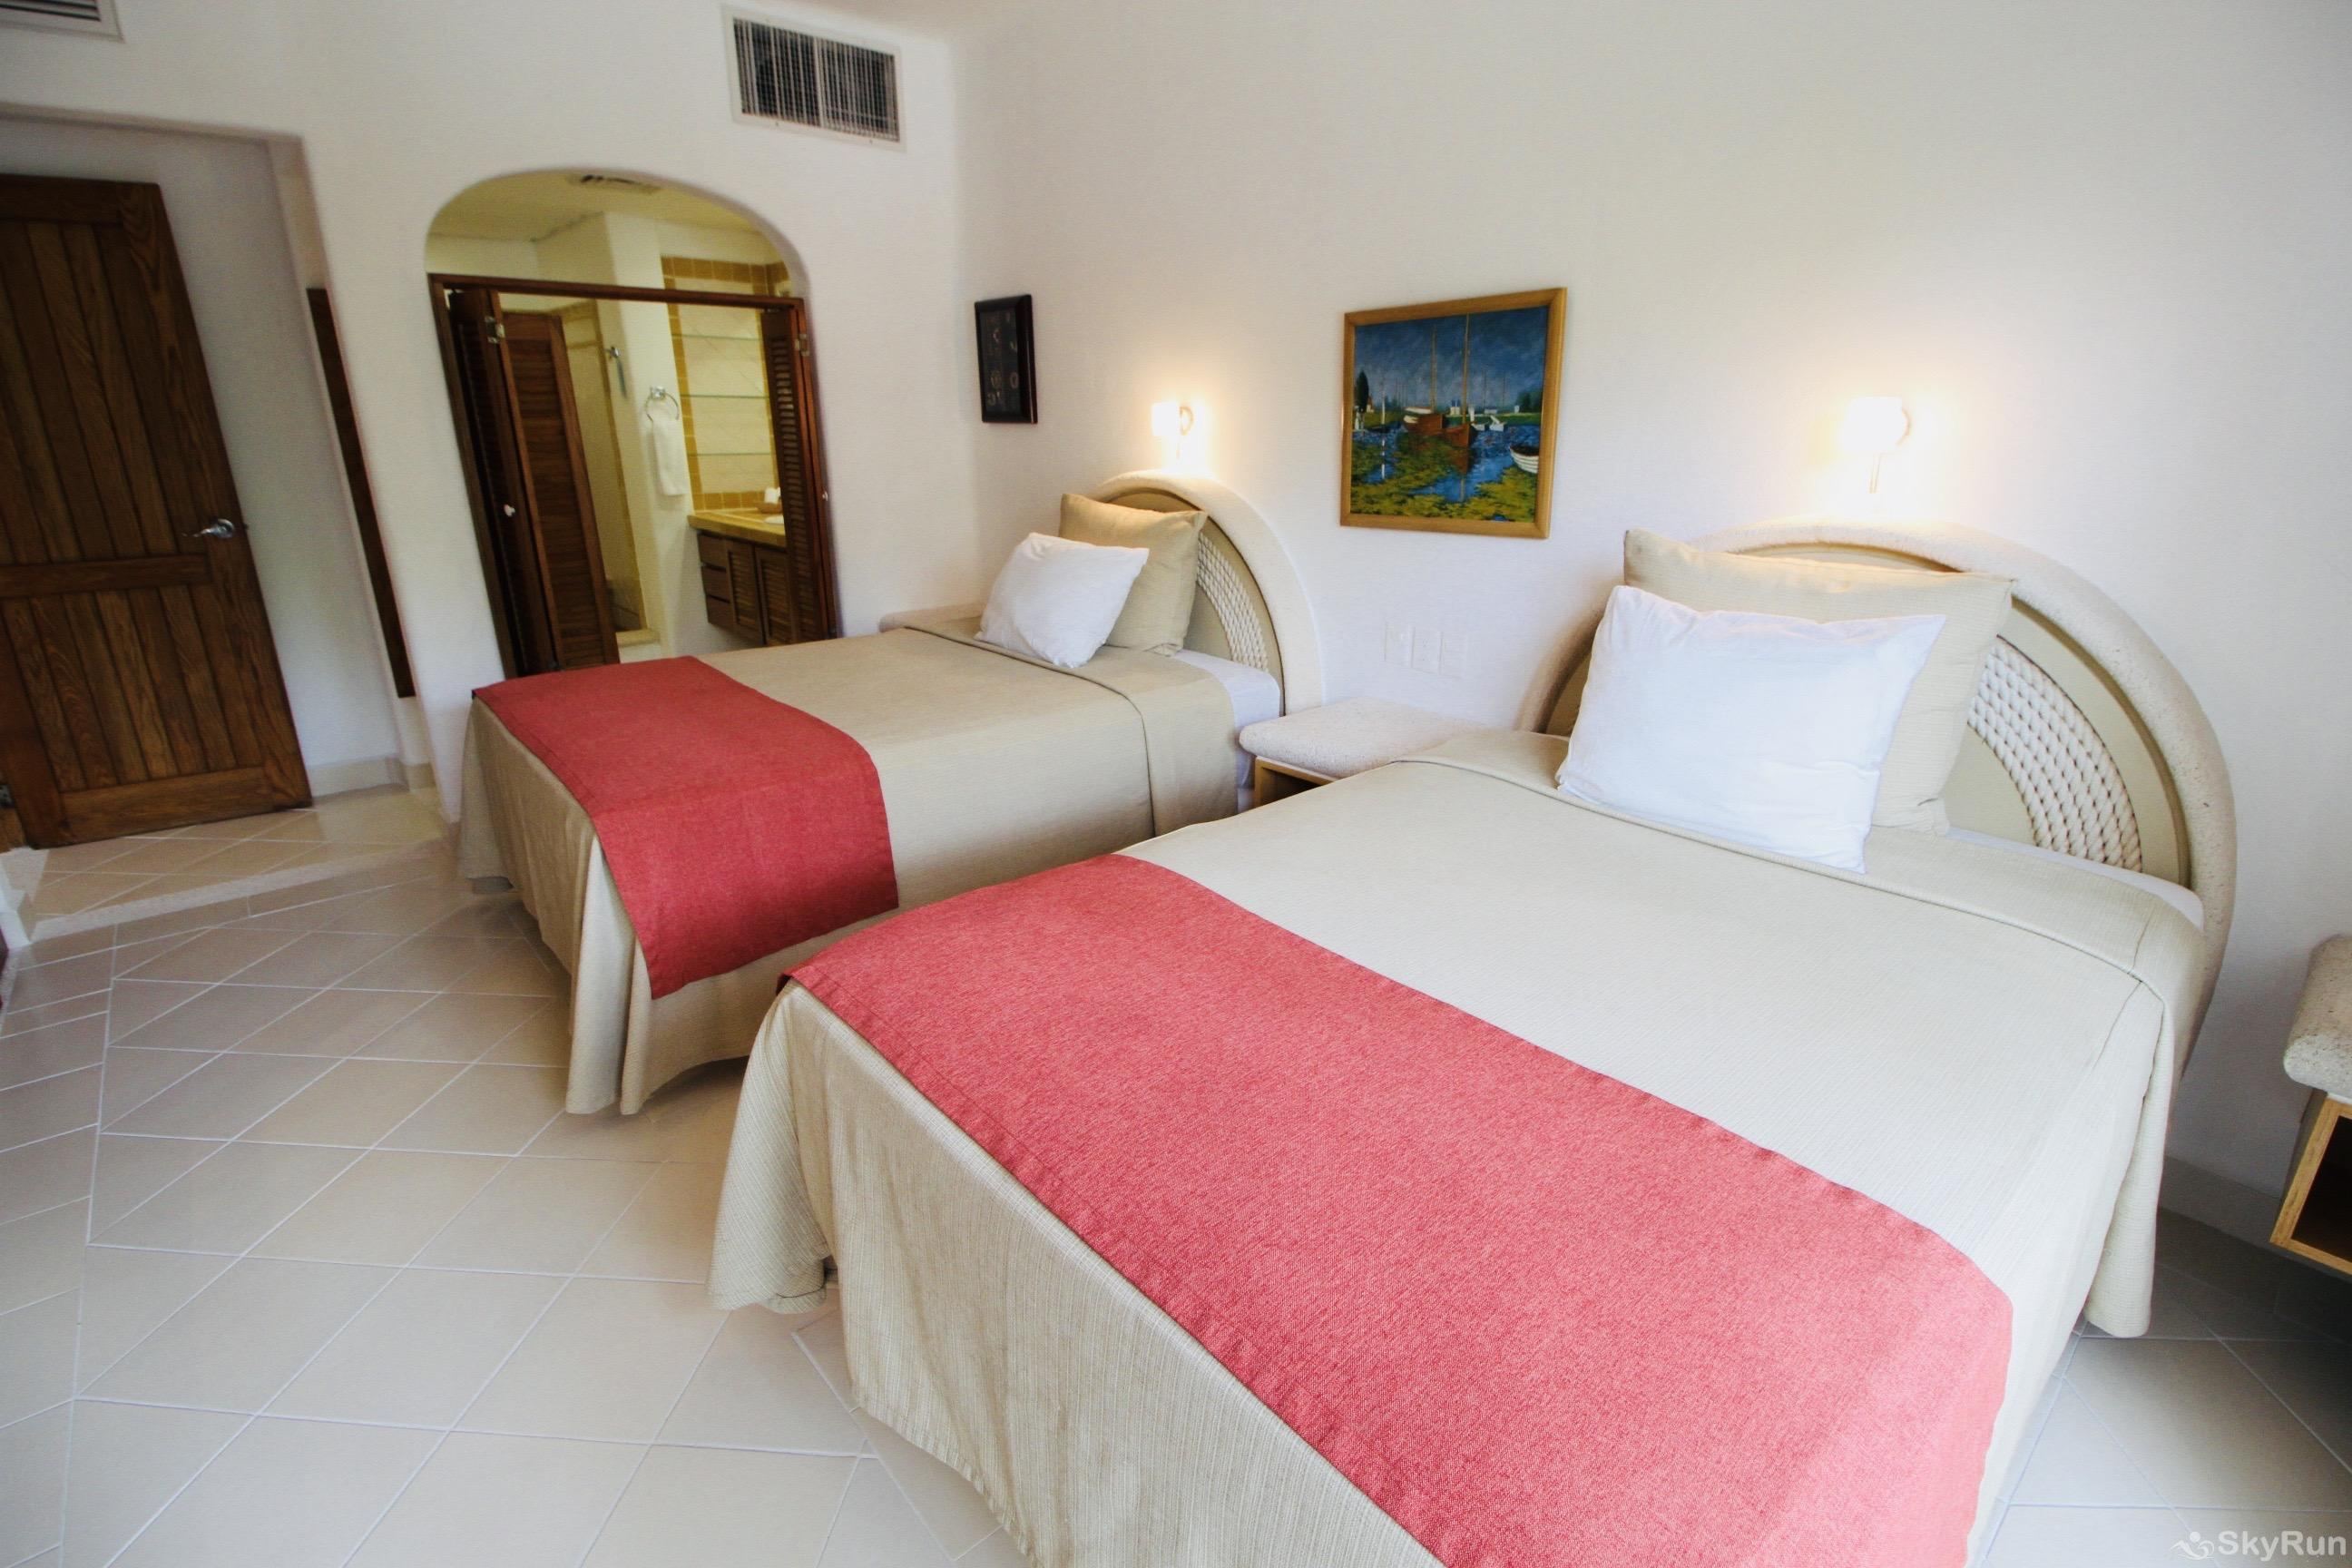 Stunning Beachfront Villa at Akumal, exclusive area north of Tulum 2nd Bedroom 2 Queen Beds